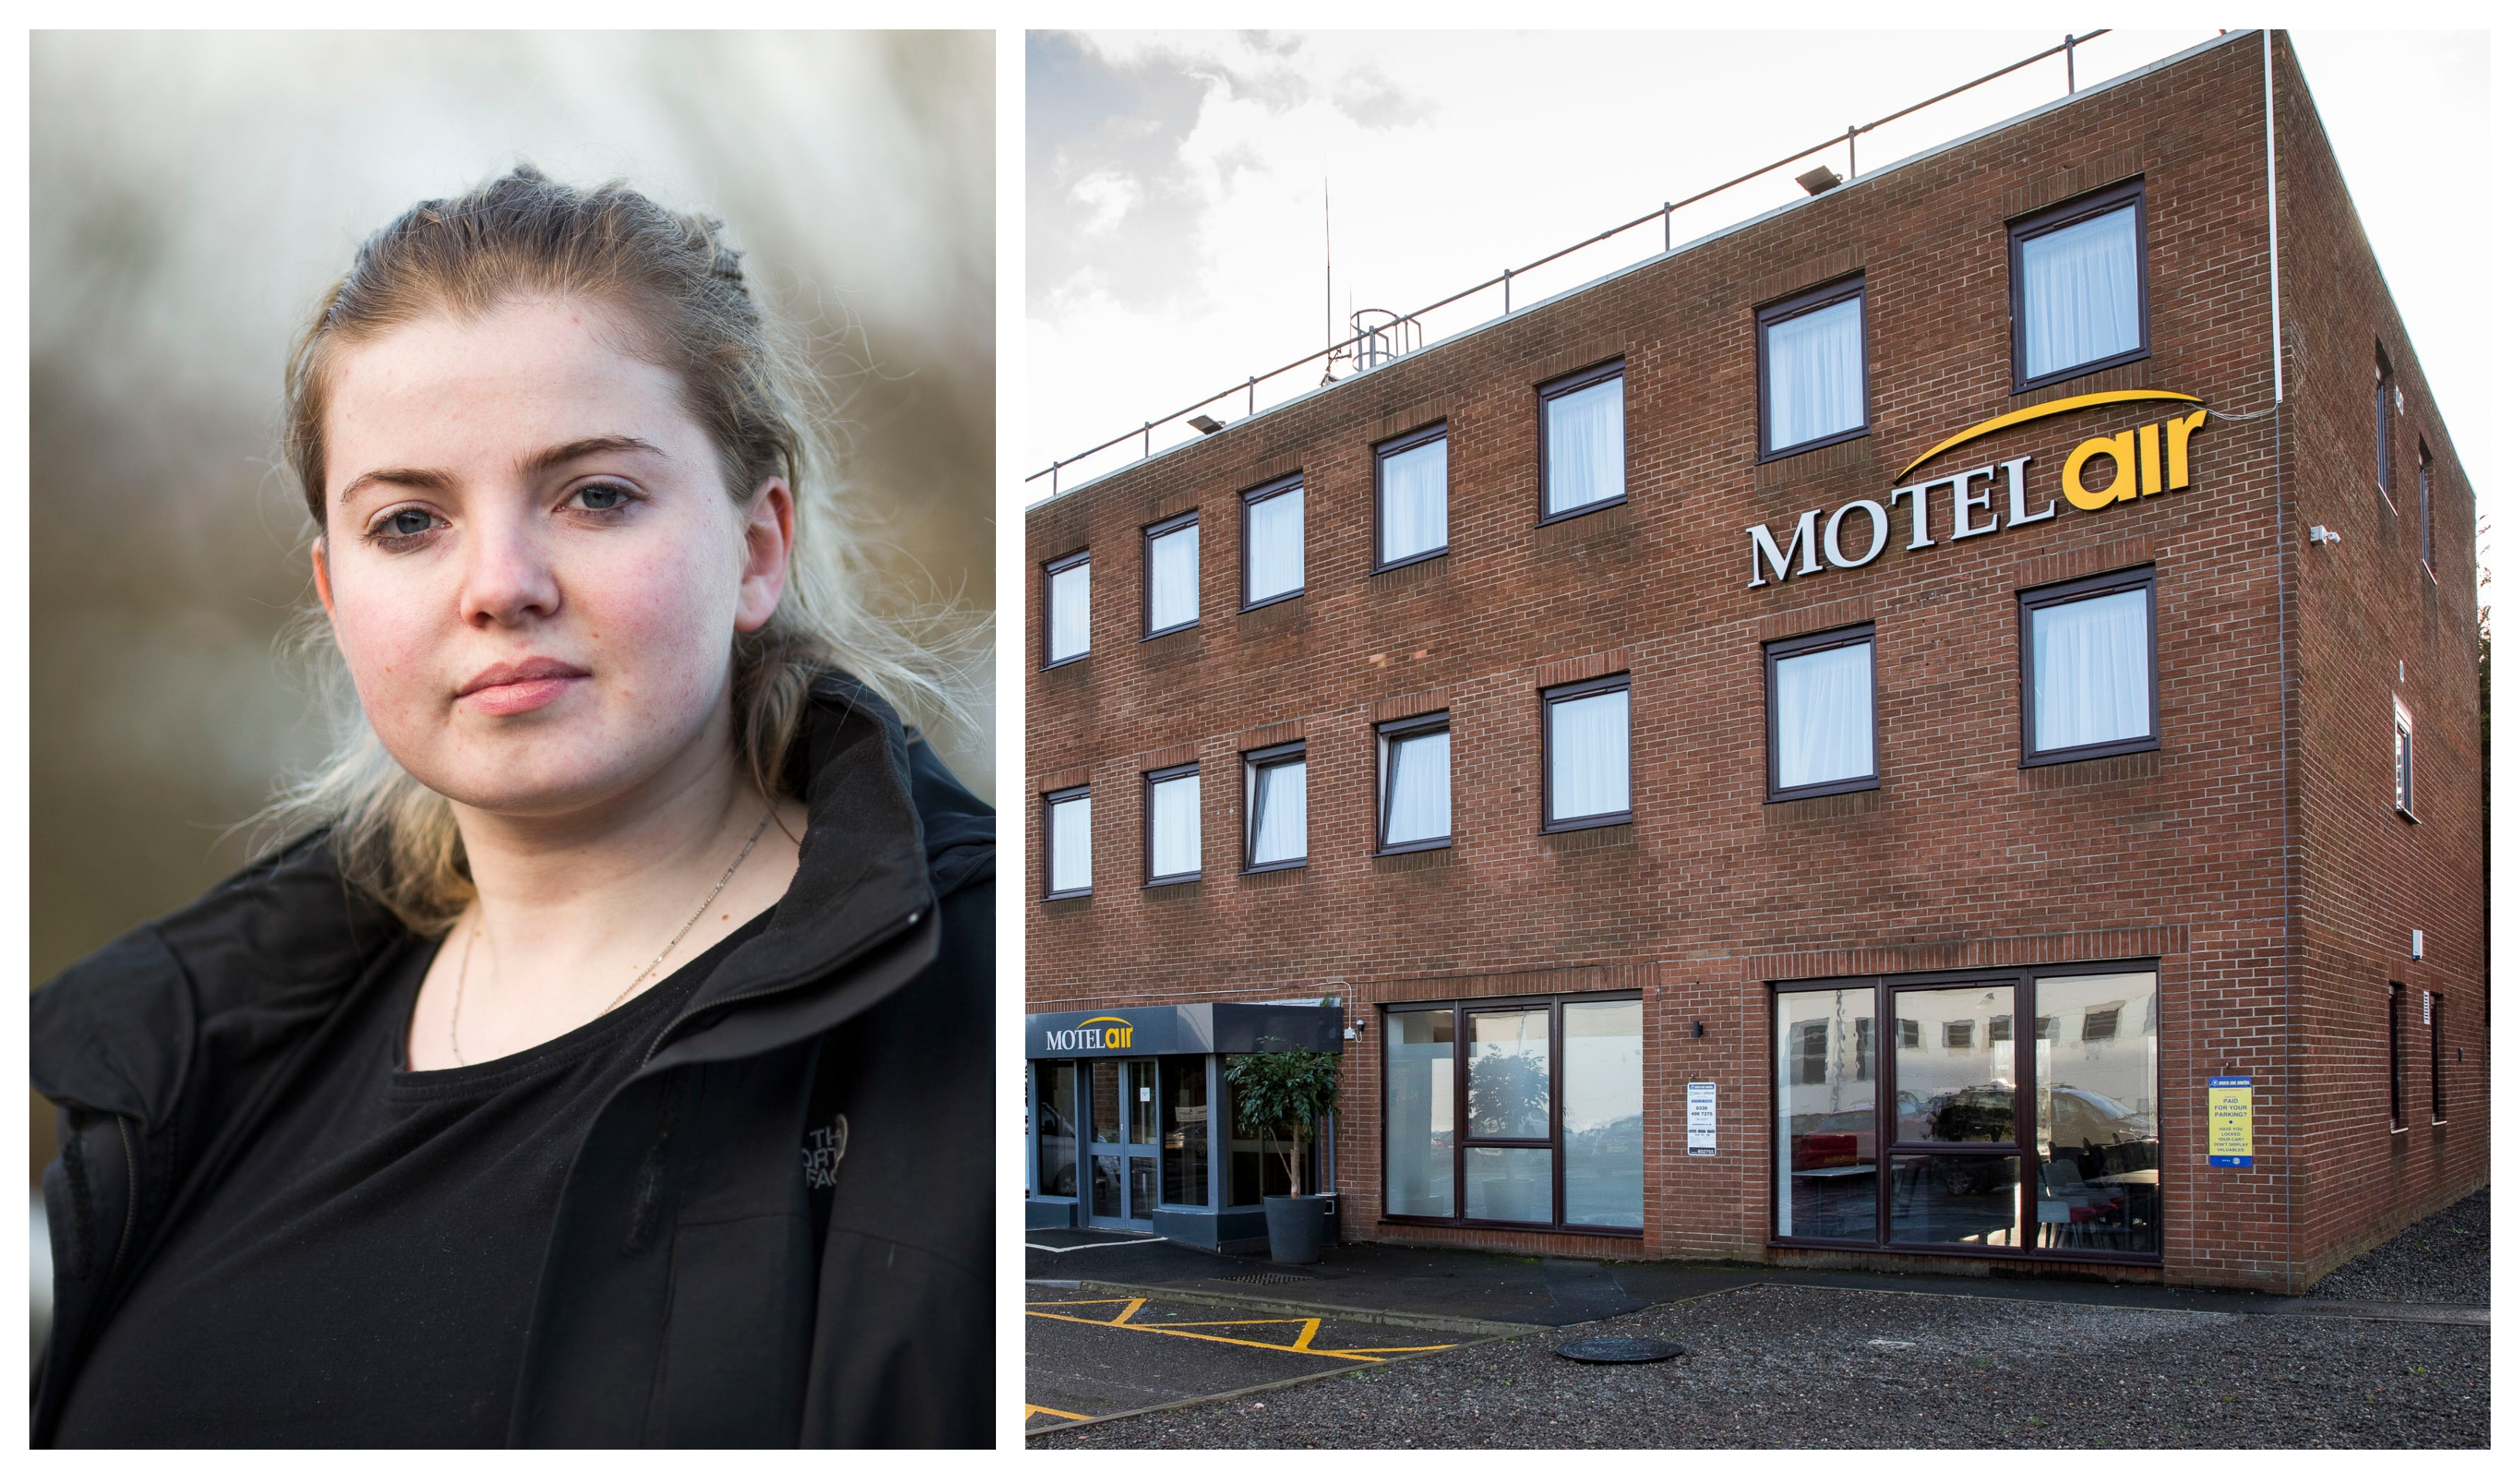 Louise Gillies and her friends stayed at the Motel Air in Paisley